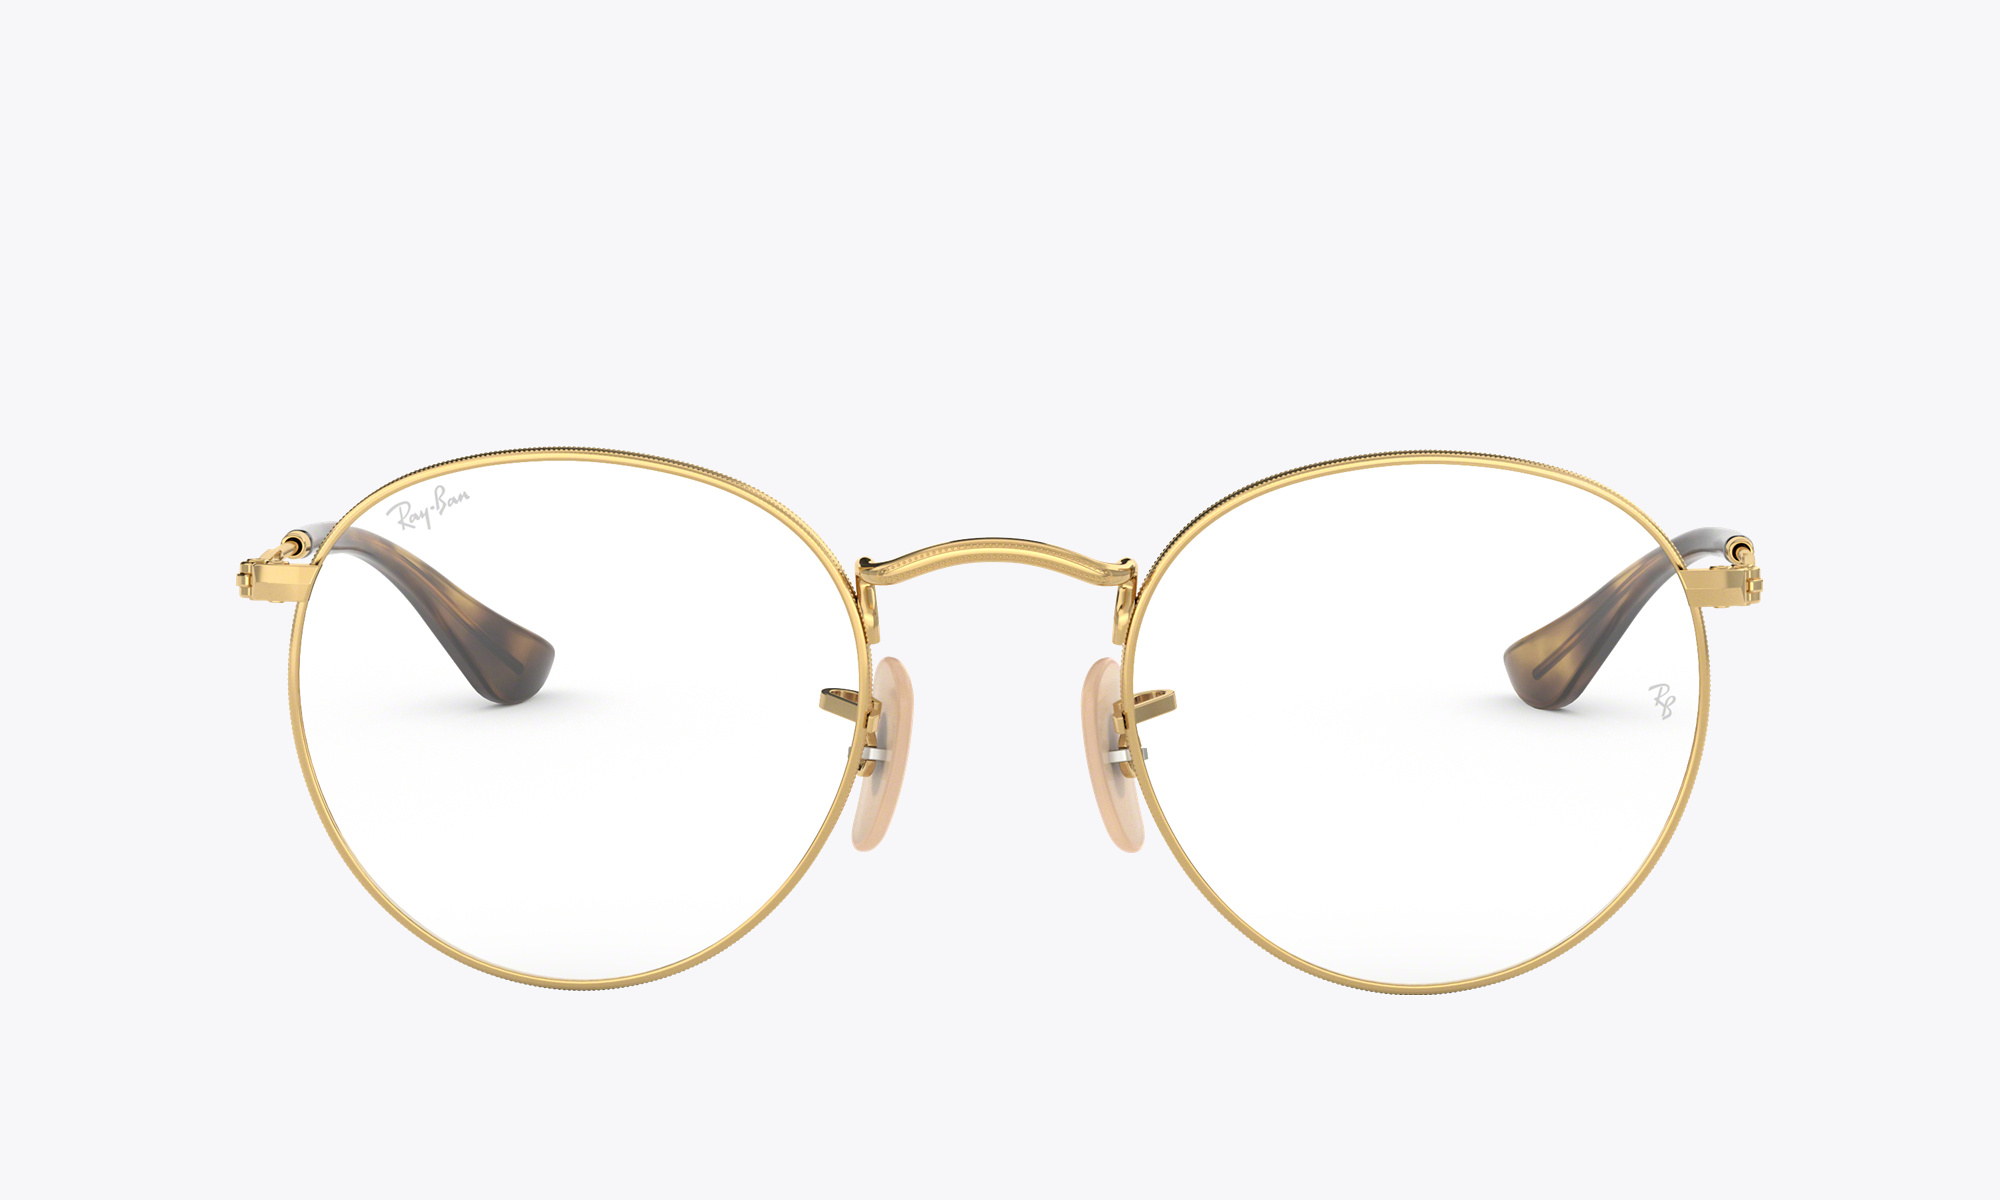 Image of Ray-Ban ROUND METAL OPTICS color Gold